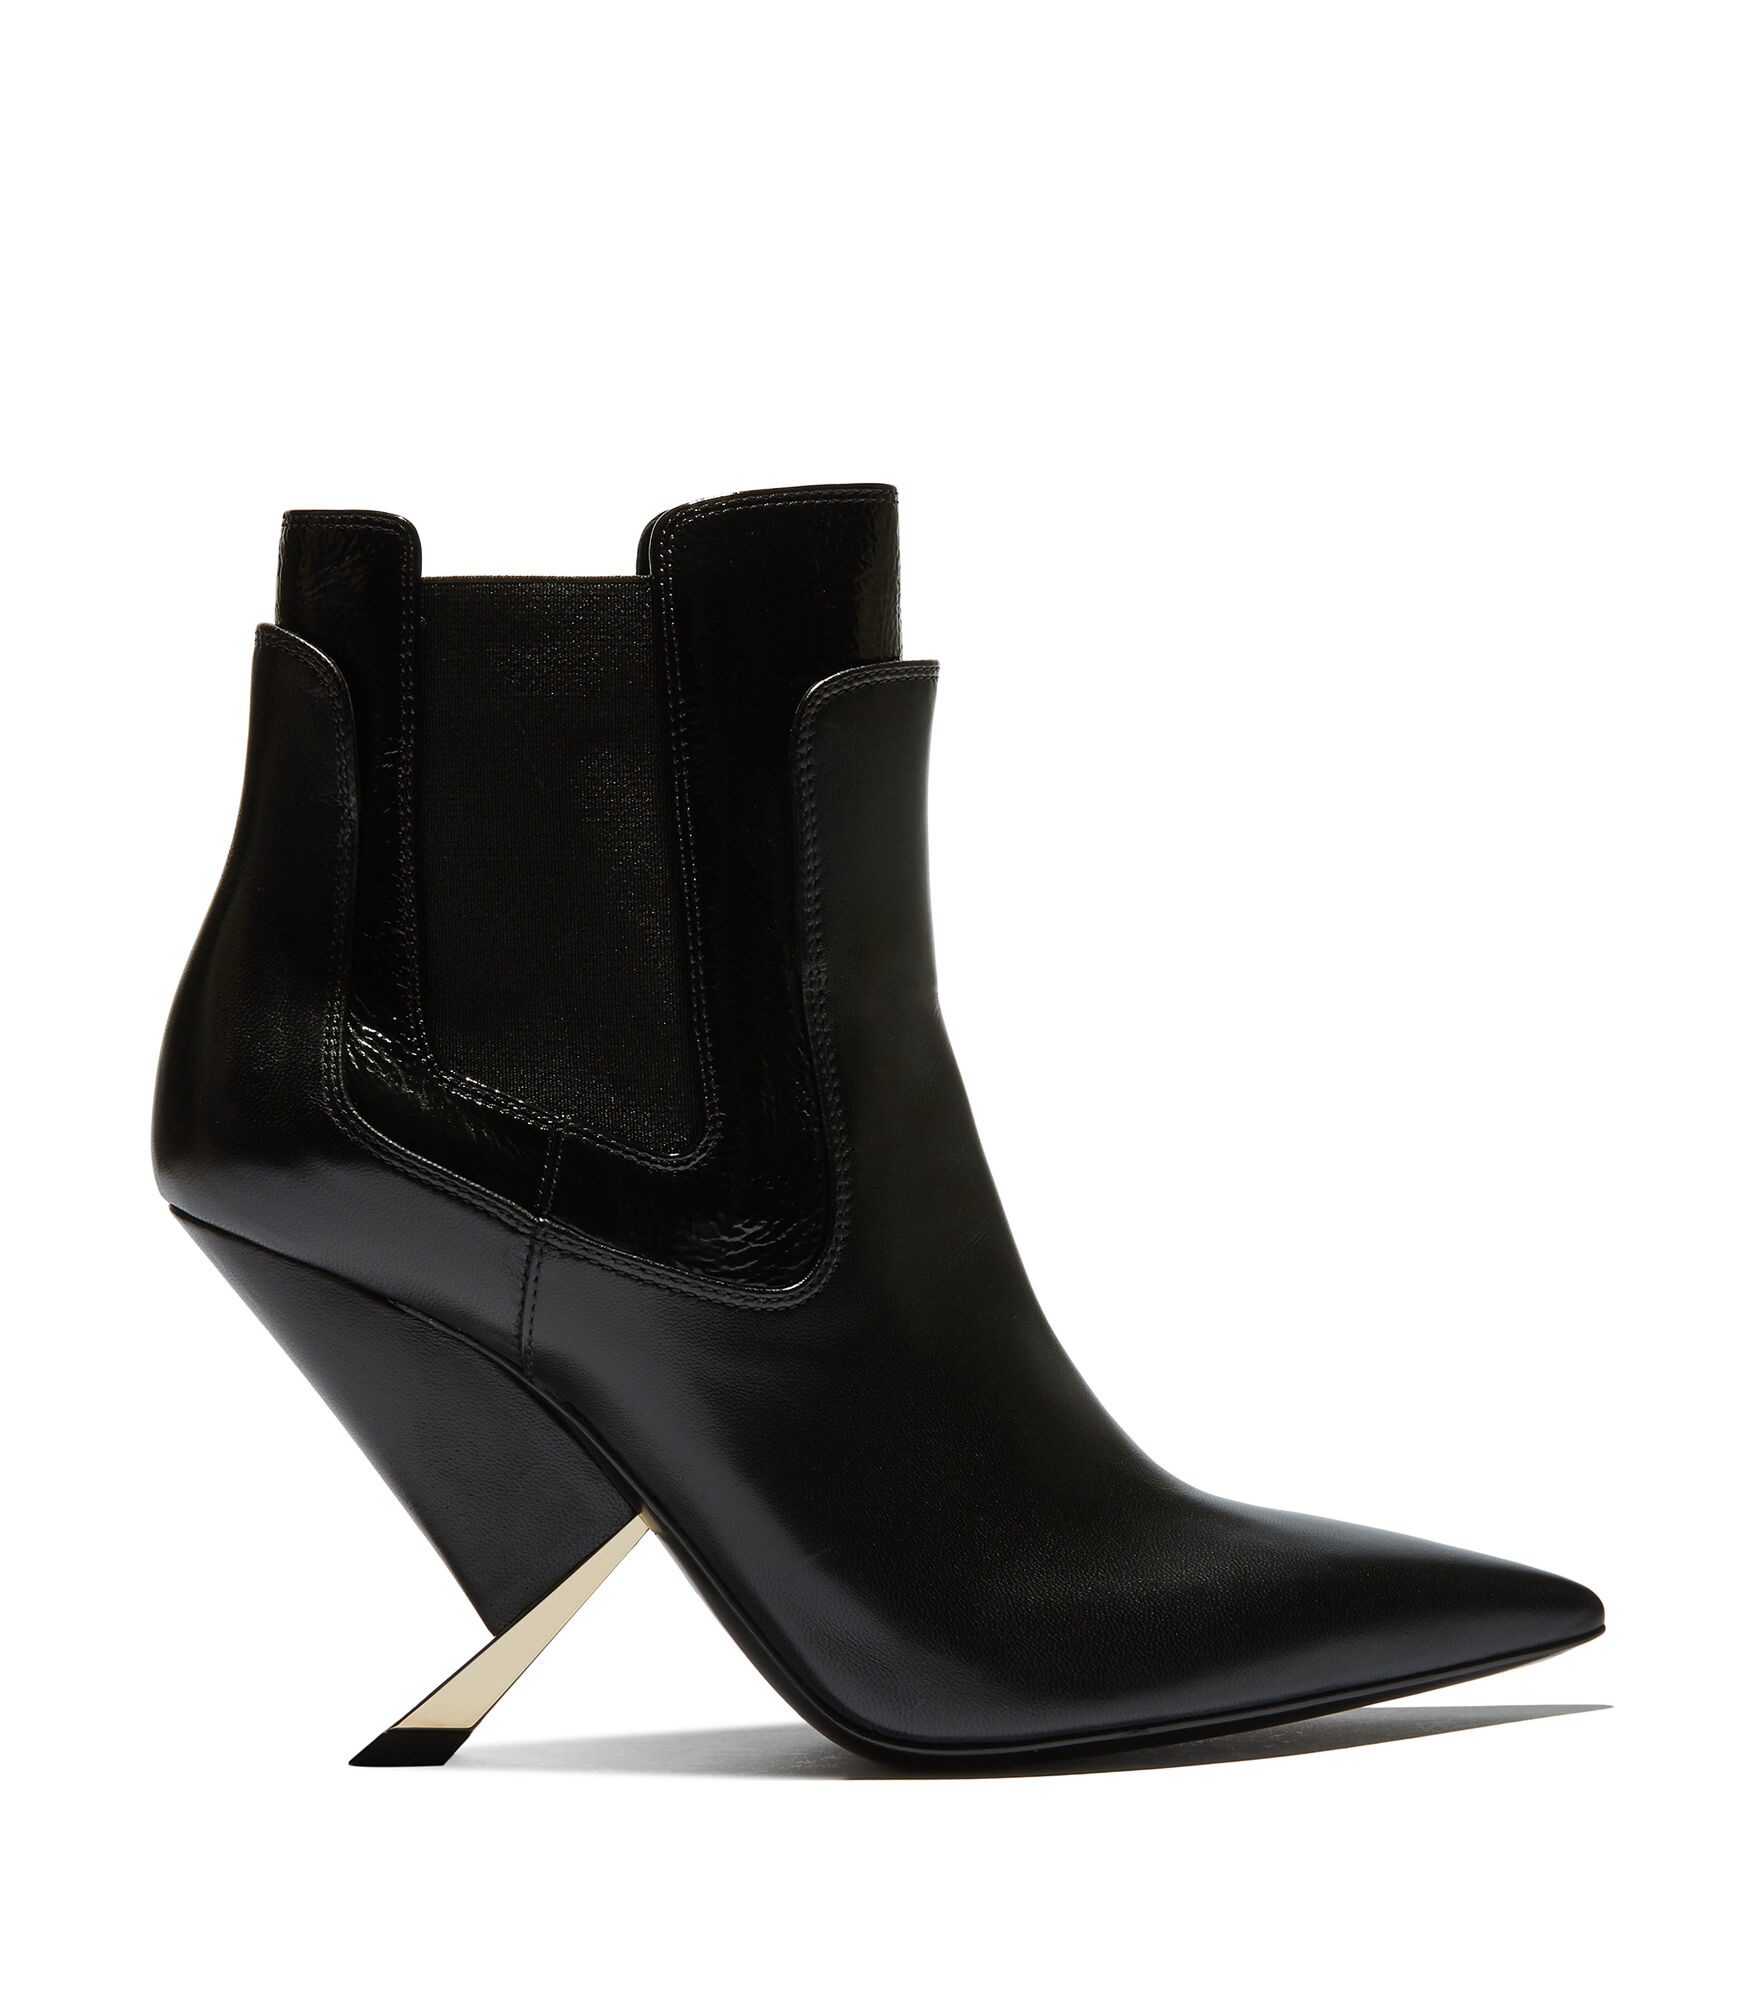 Casadei Ankle Boots - X Blade Black Nappa leather and naplak